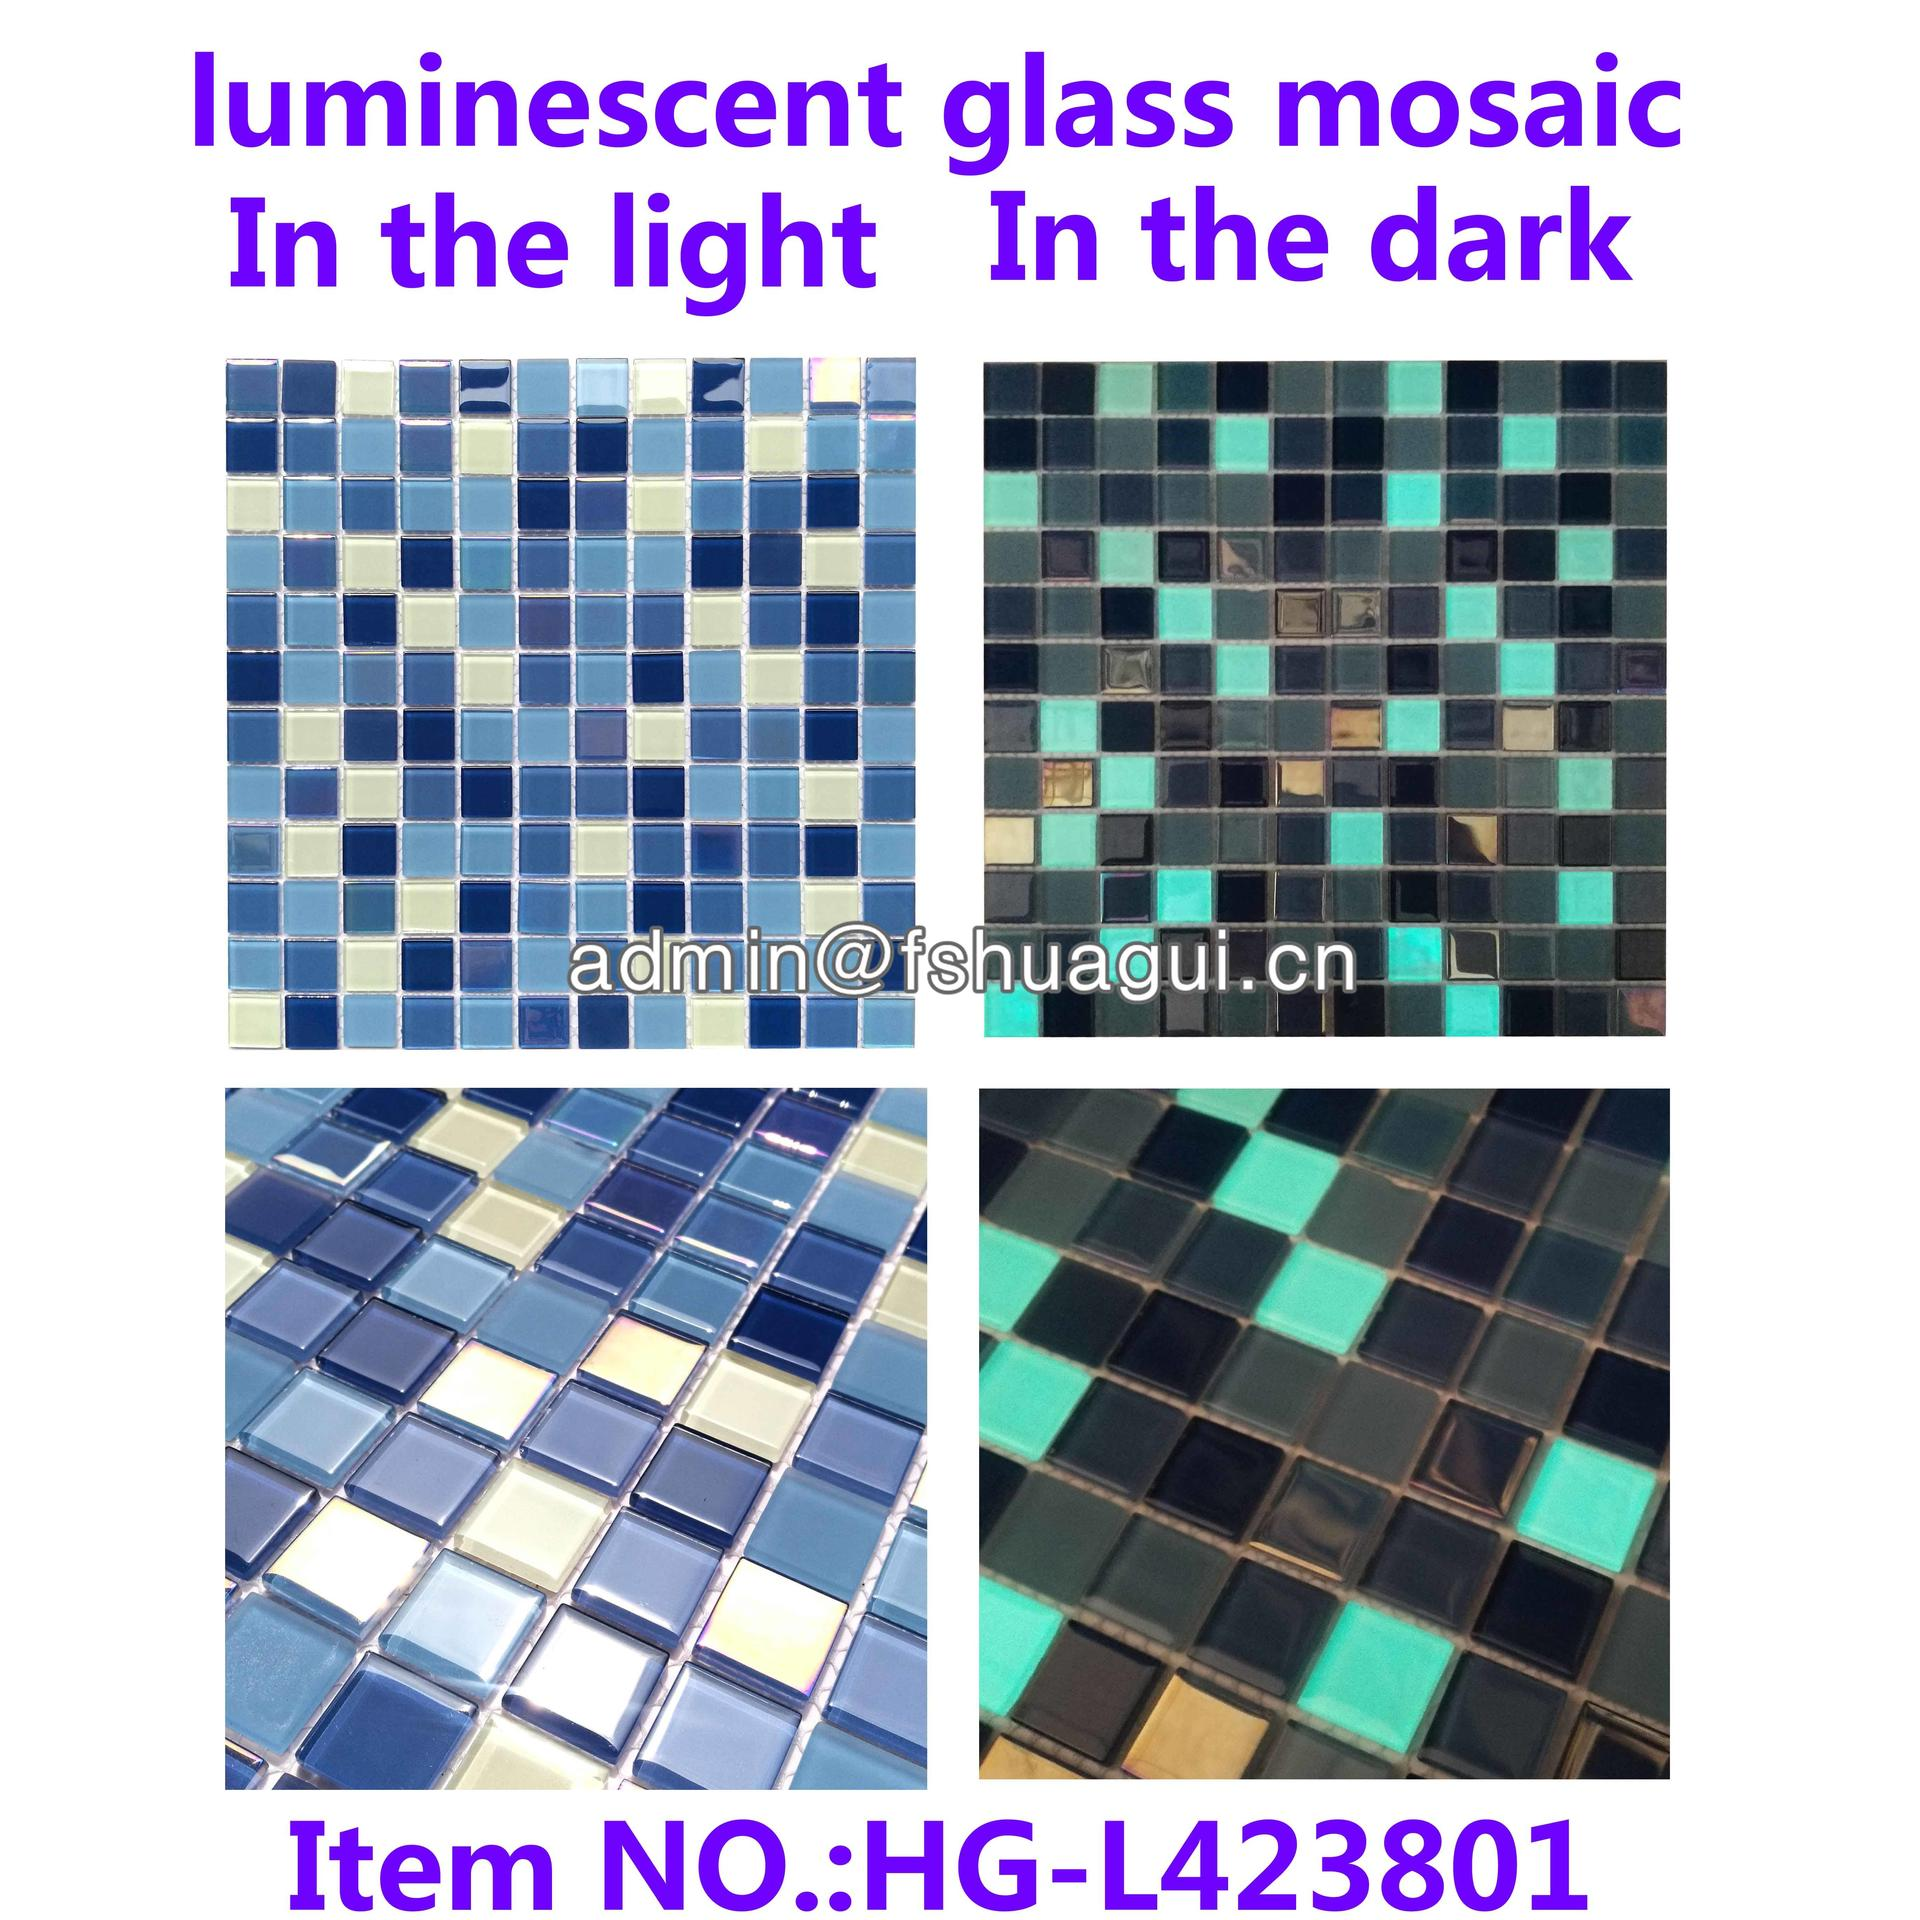 Eco-friendly glow in the dark luminescent glass mosaic pool tile